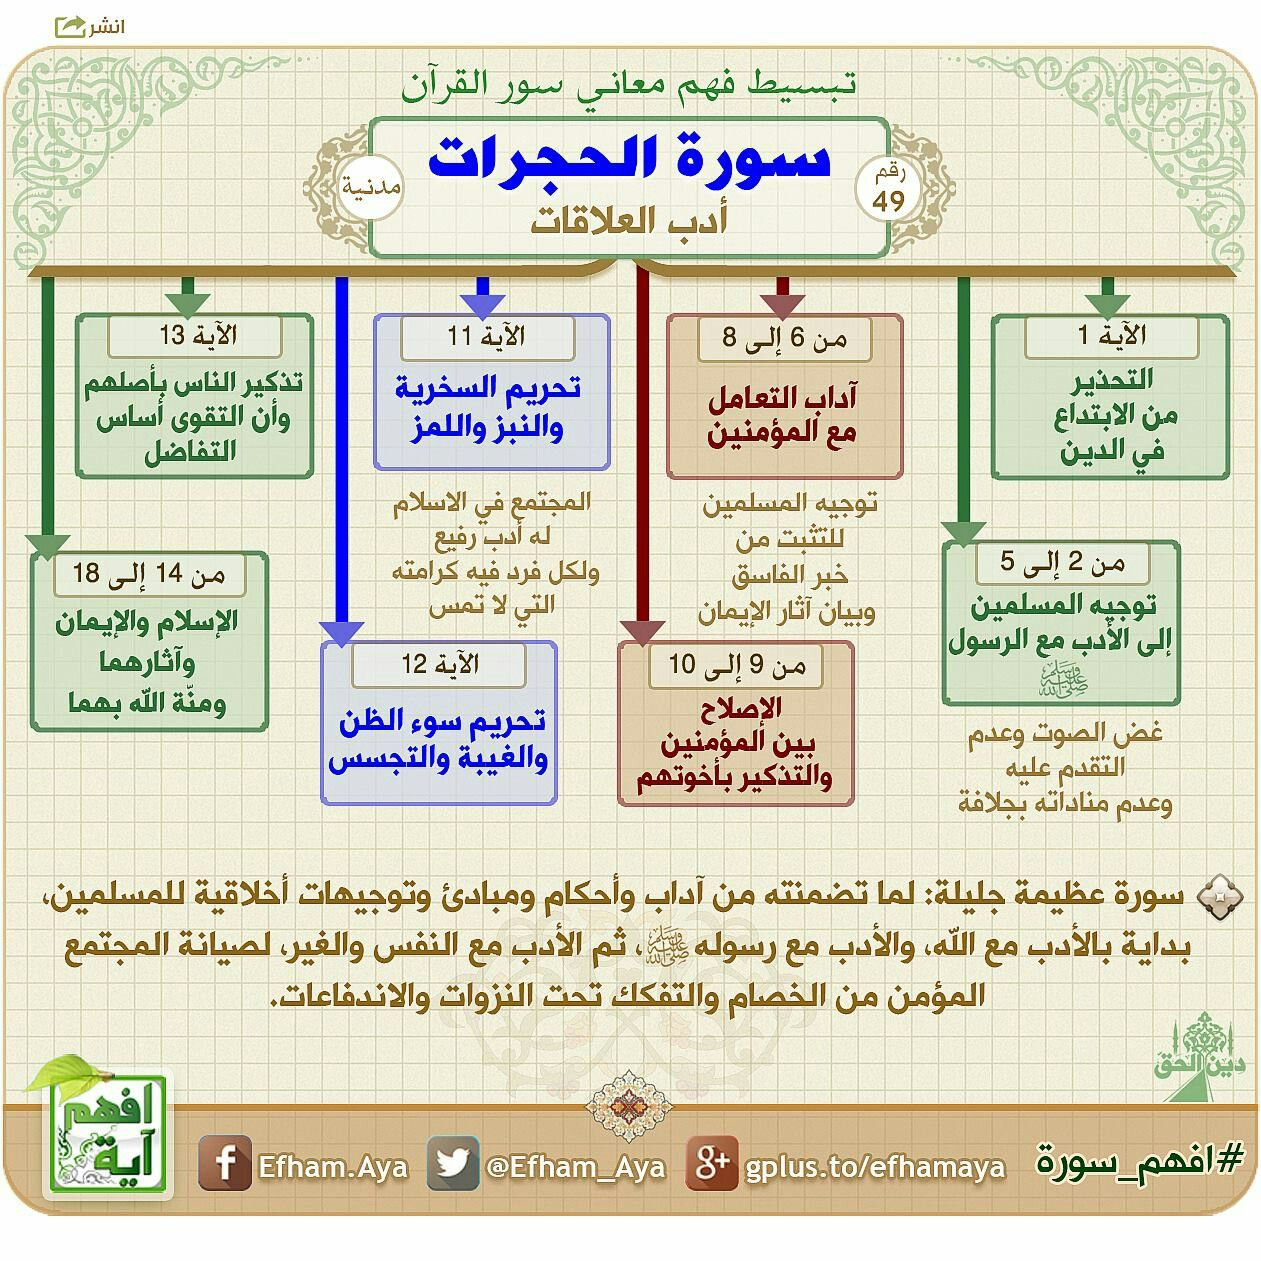 Pin By Ali Faid On اسلامى Quran Tafseer Quran Book Quran Recitation